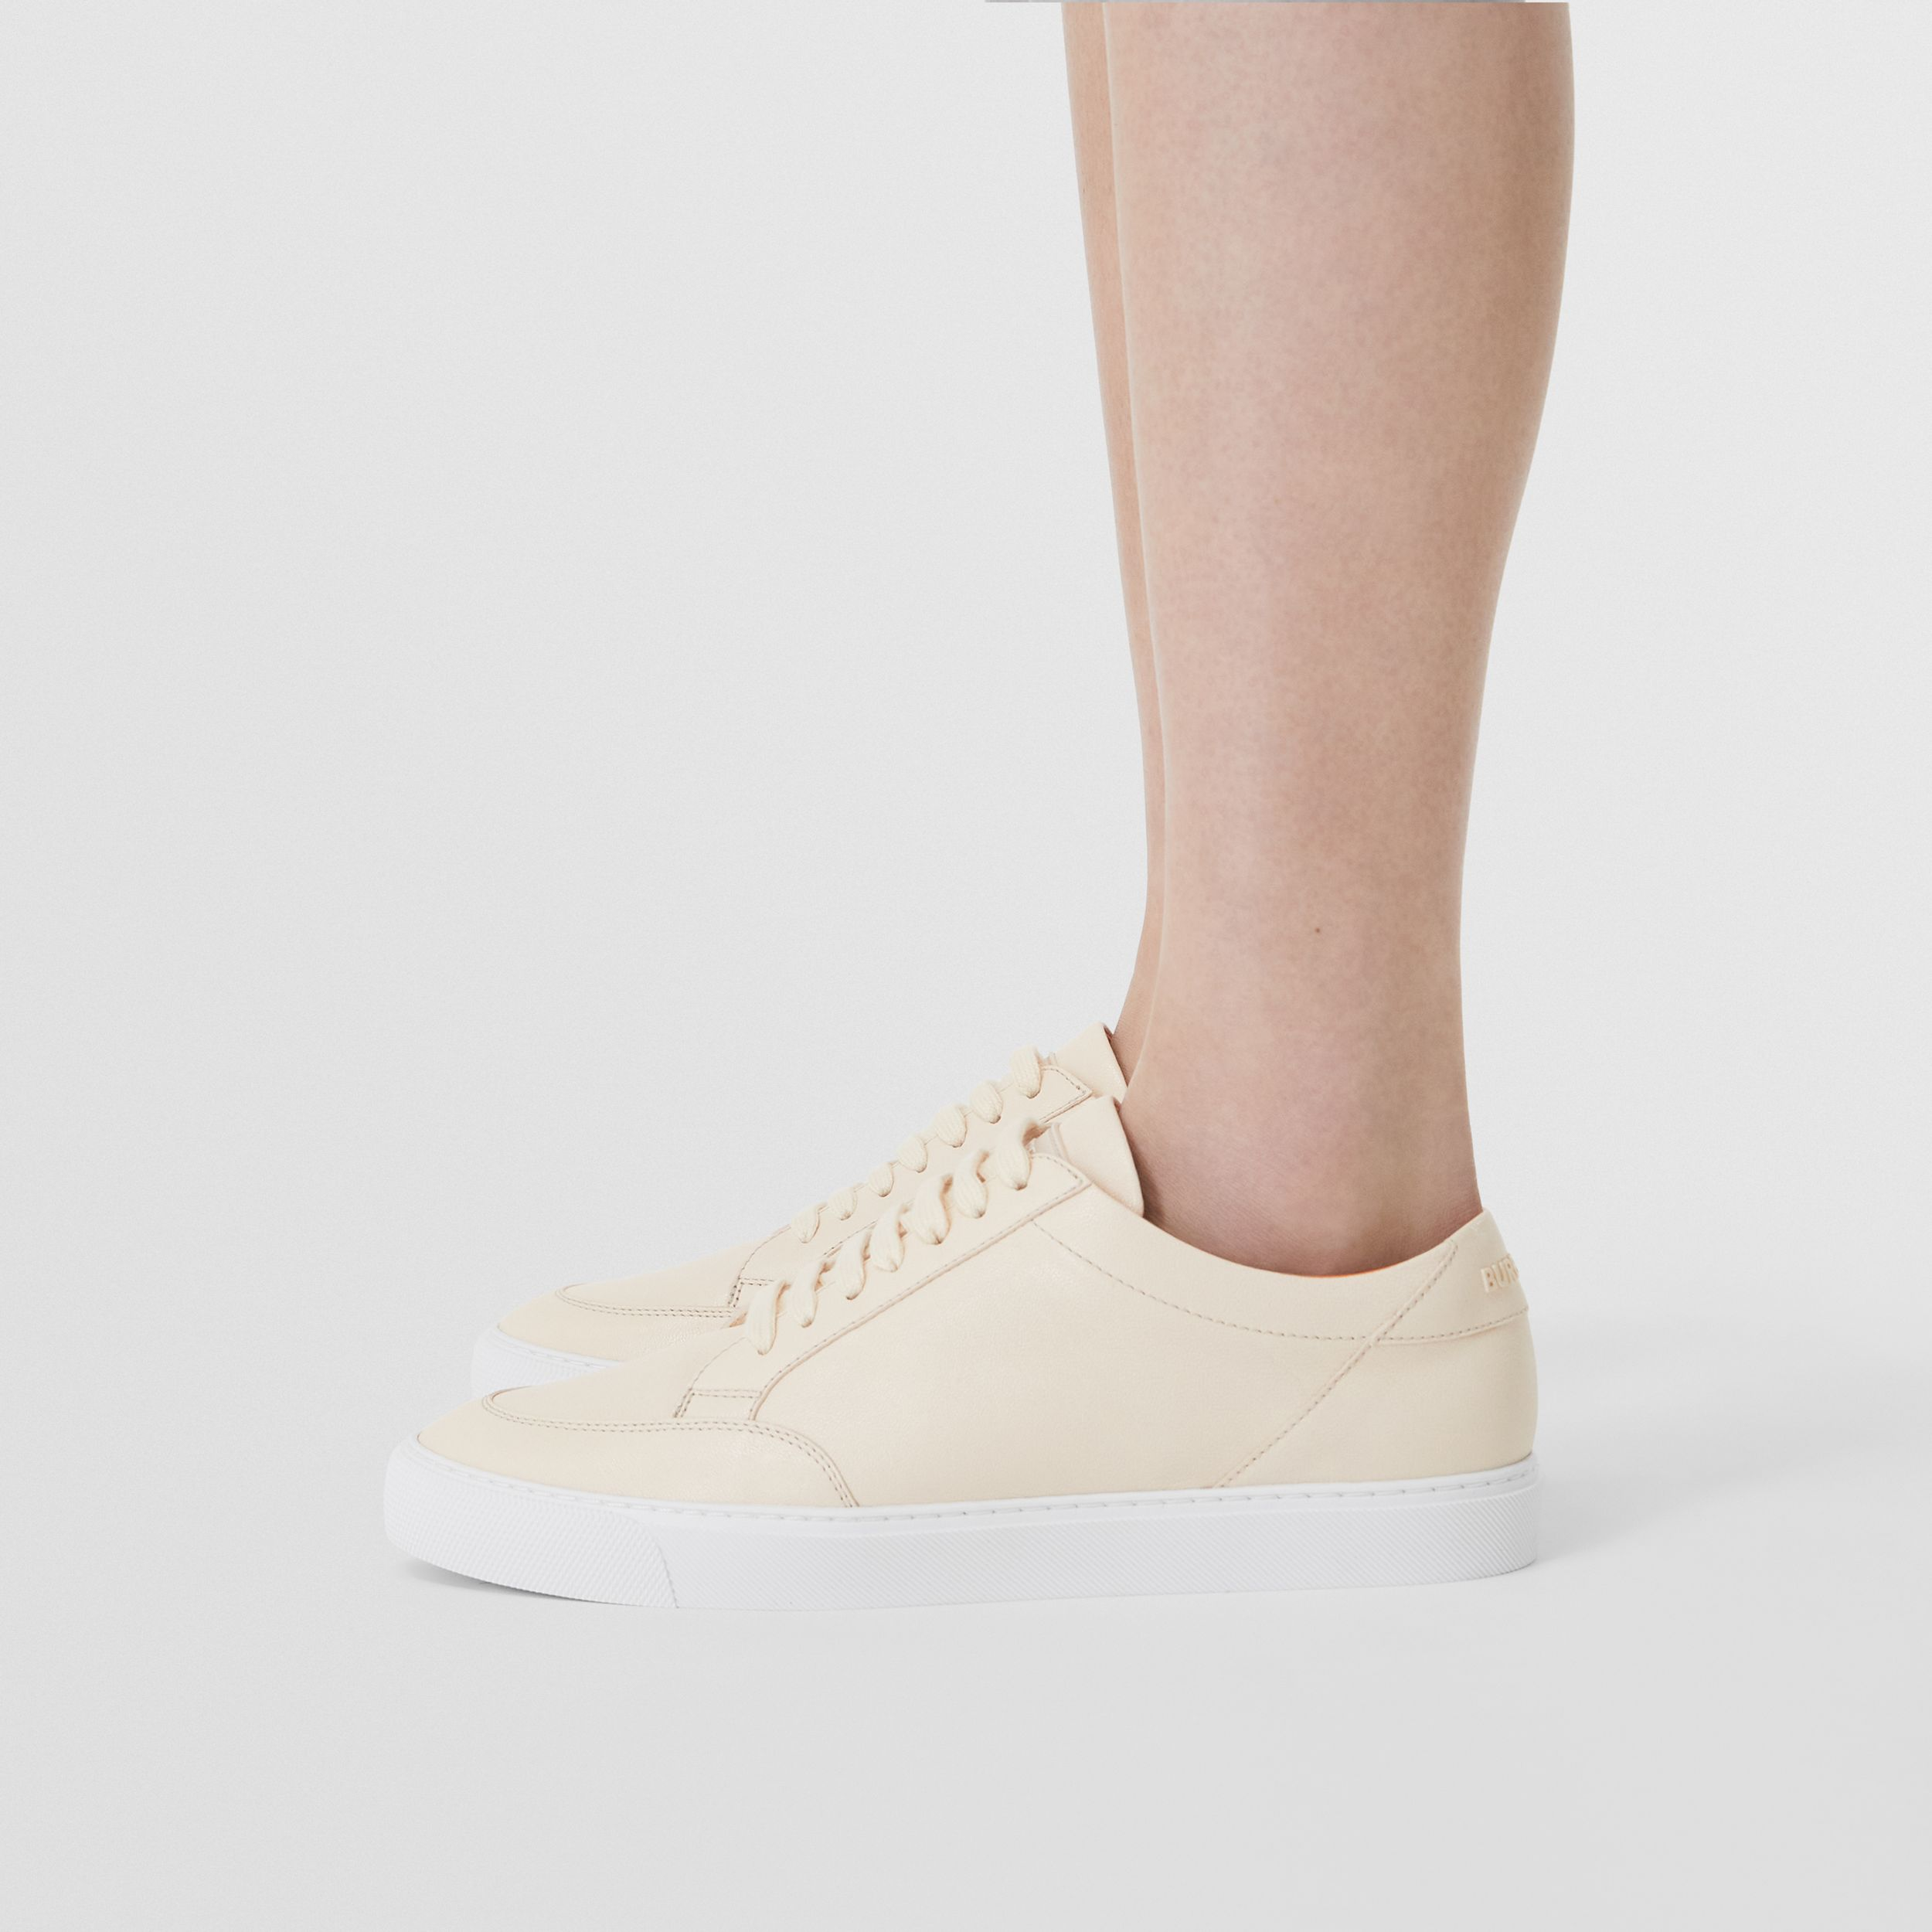 Logo Detail Lambskin Sneakers in Pale Biscuit - Women | Burberry Canada - 3